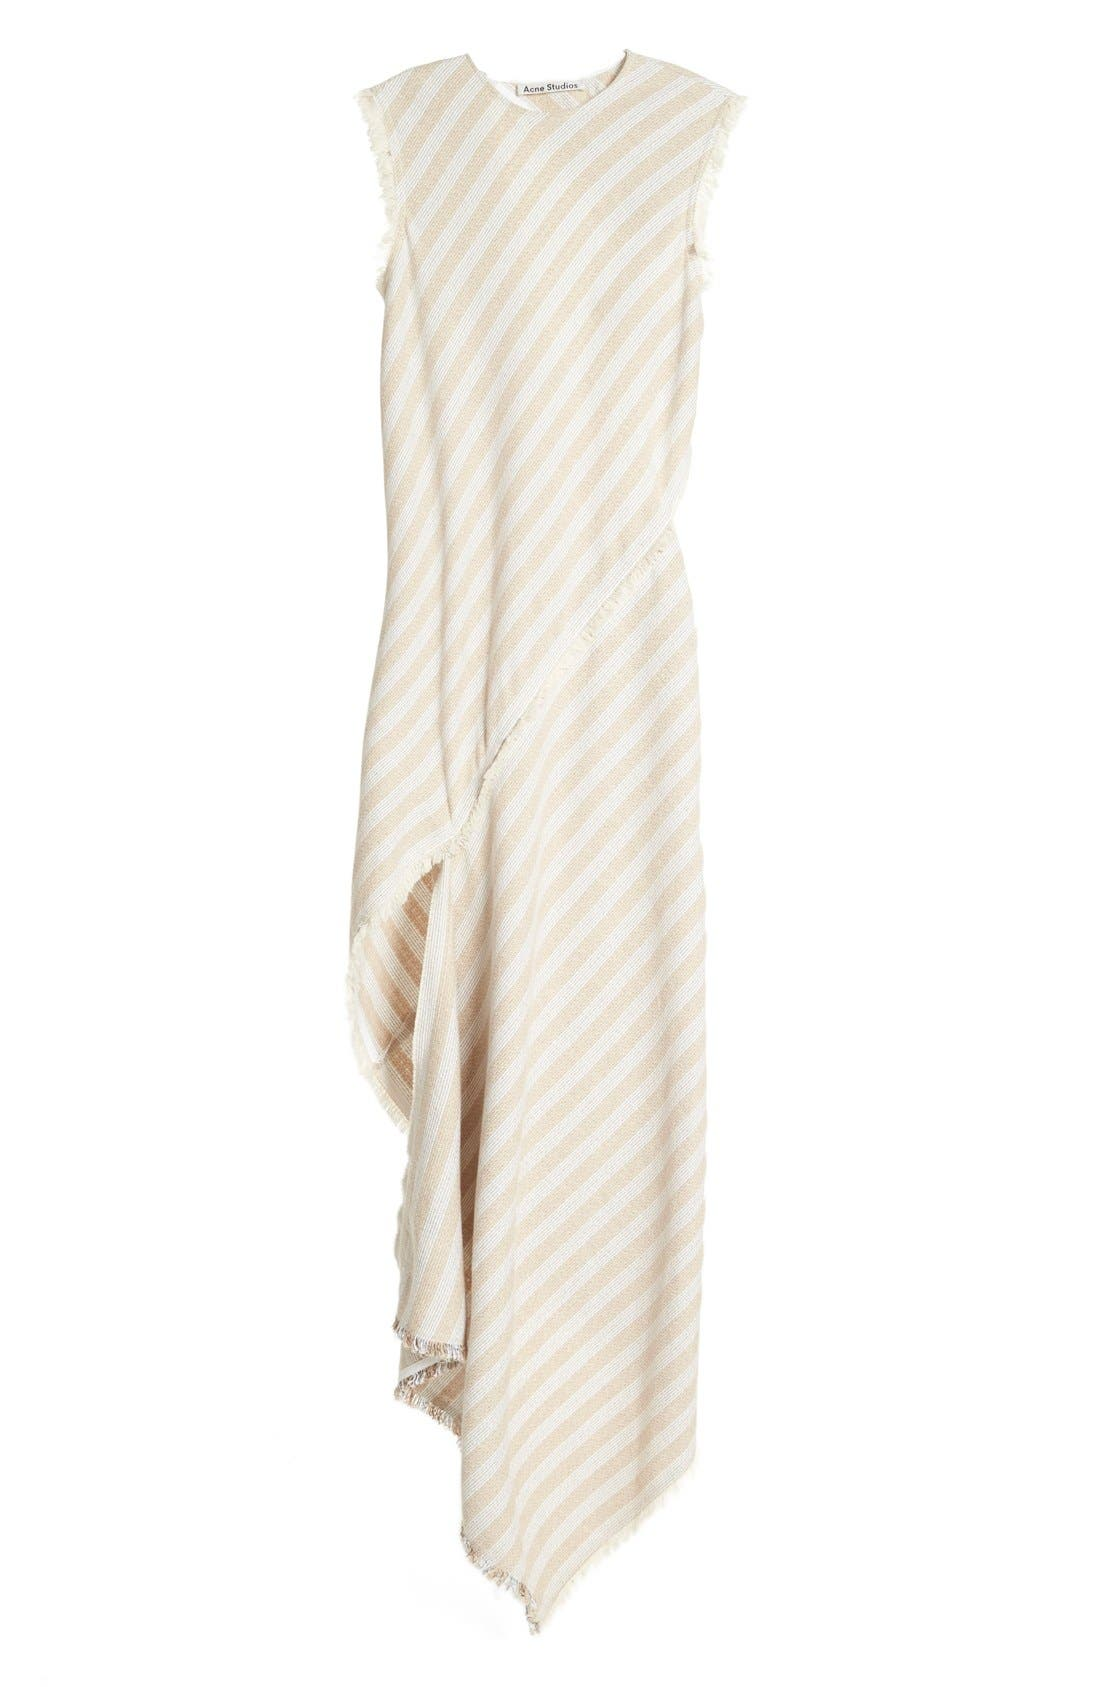 ACNE STUDIOS,                             'Cosby' Stripe Sleeveless Dress,                             Alternate thumbnail 2, color,                             270